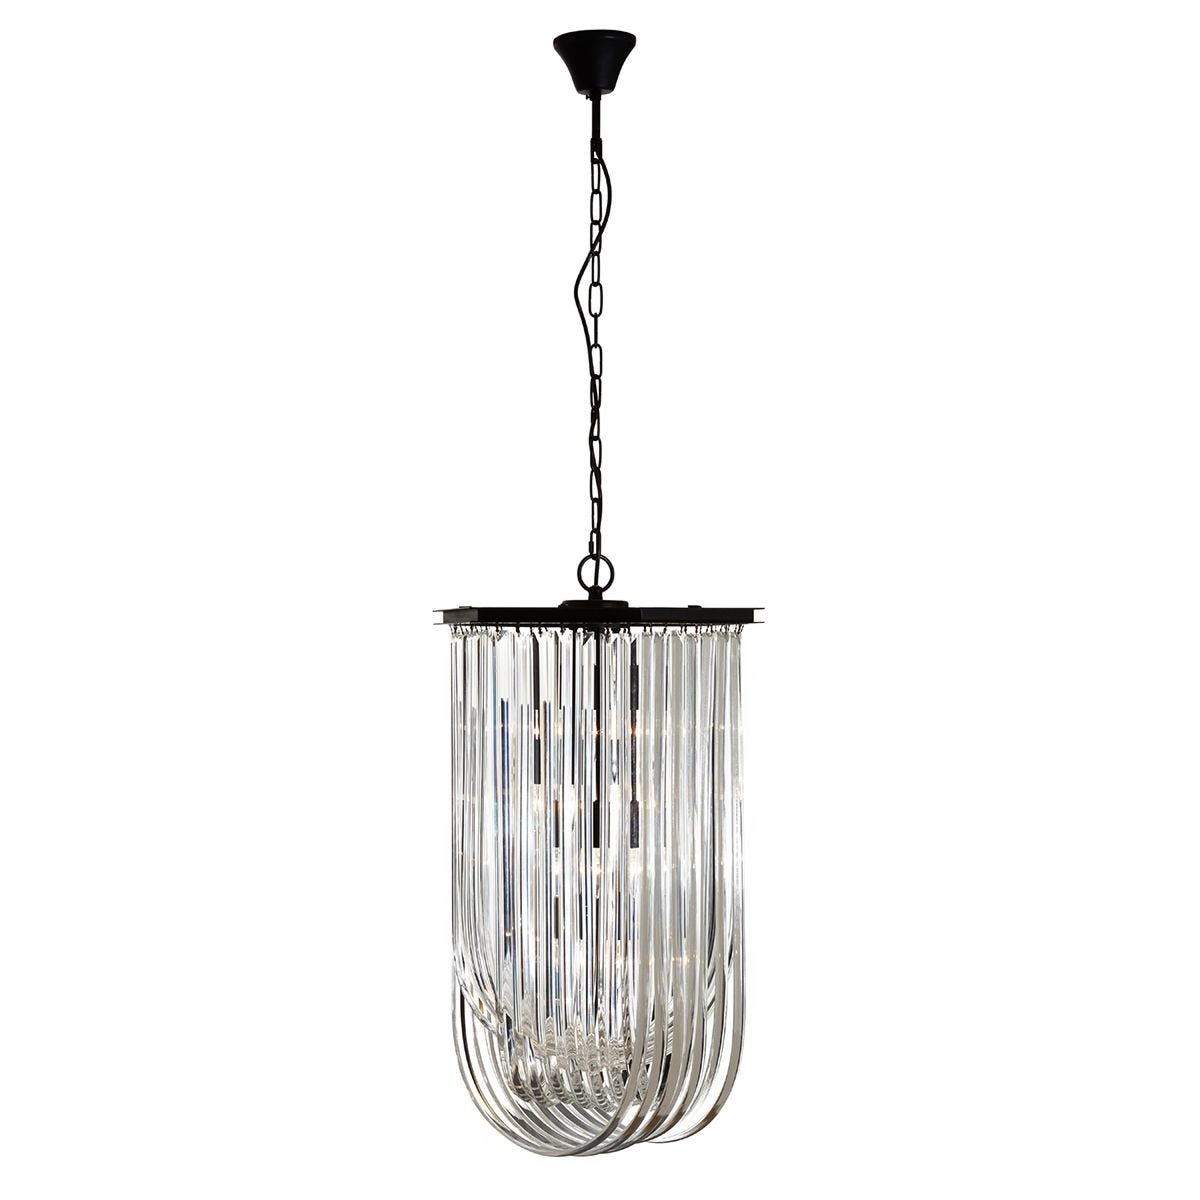 Premier Housewares Kensington Townhouse Pendant Light in Iron with Crystals - Antique Black Finish